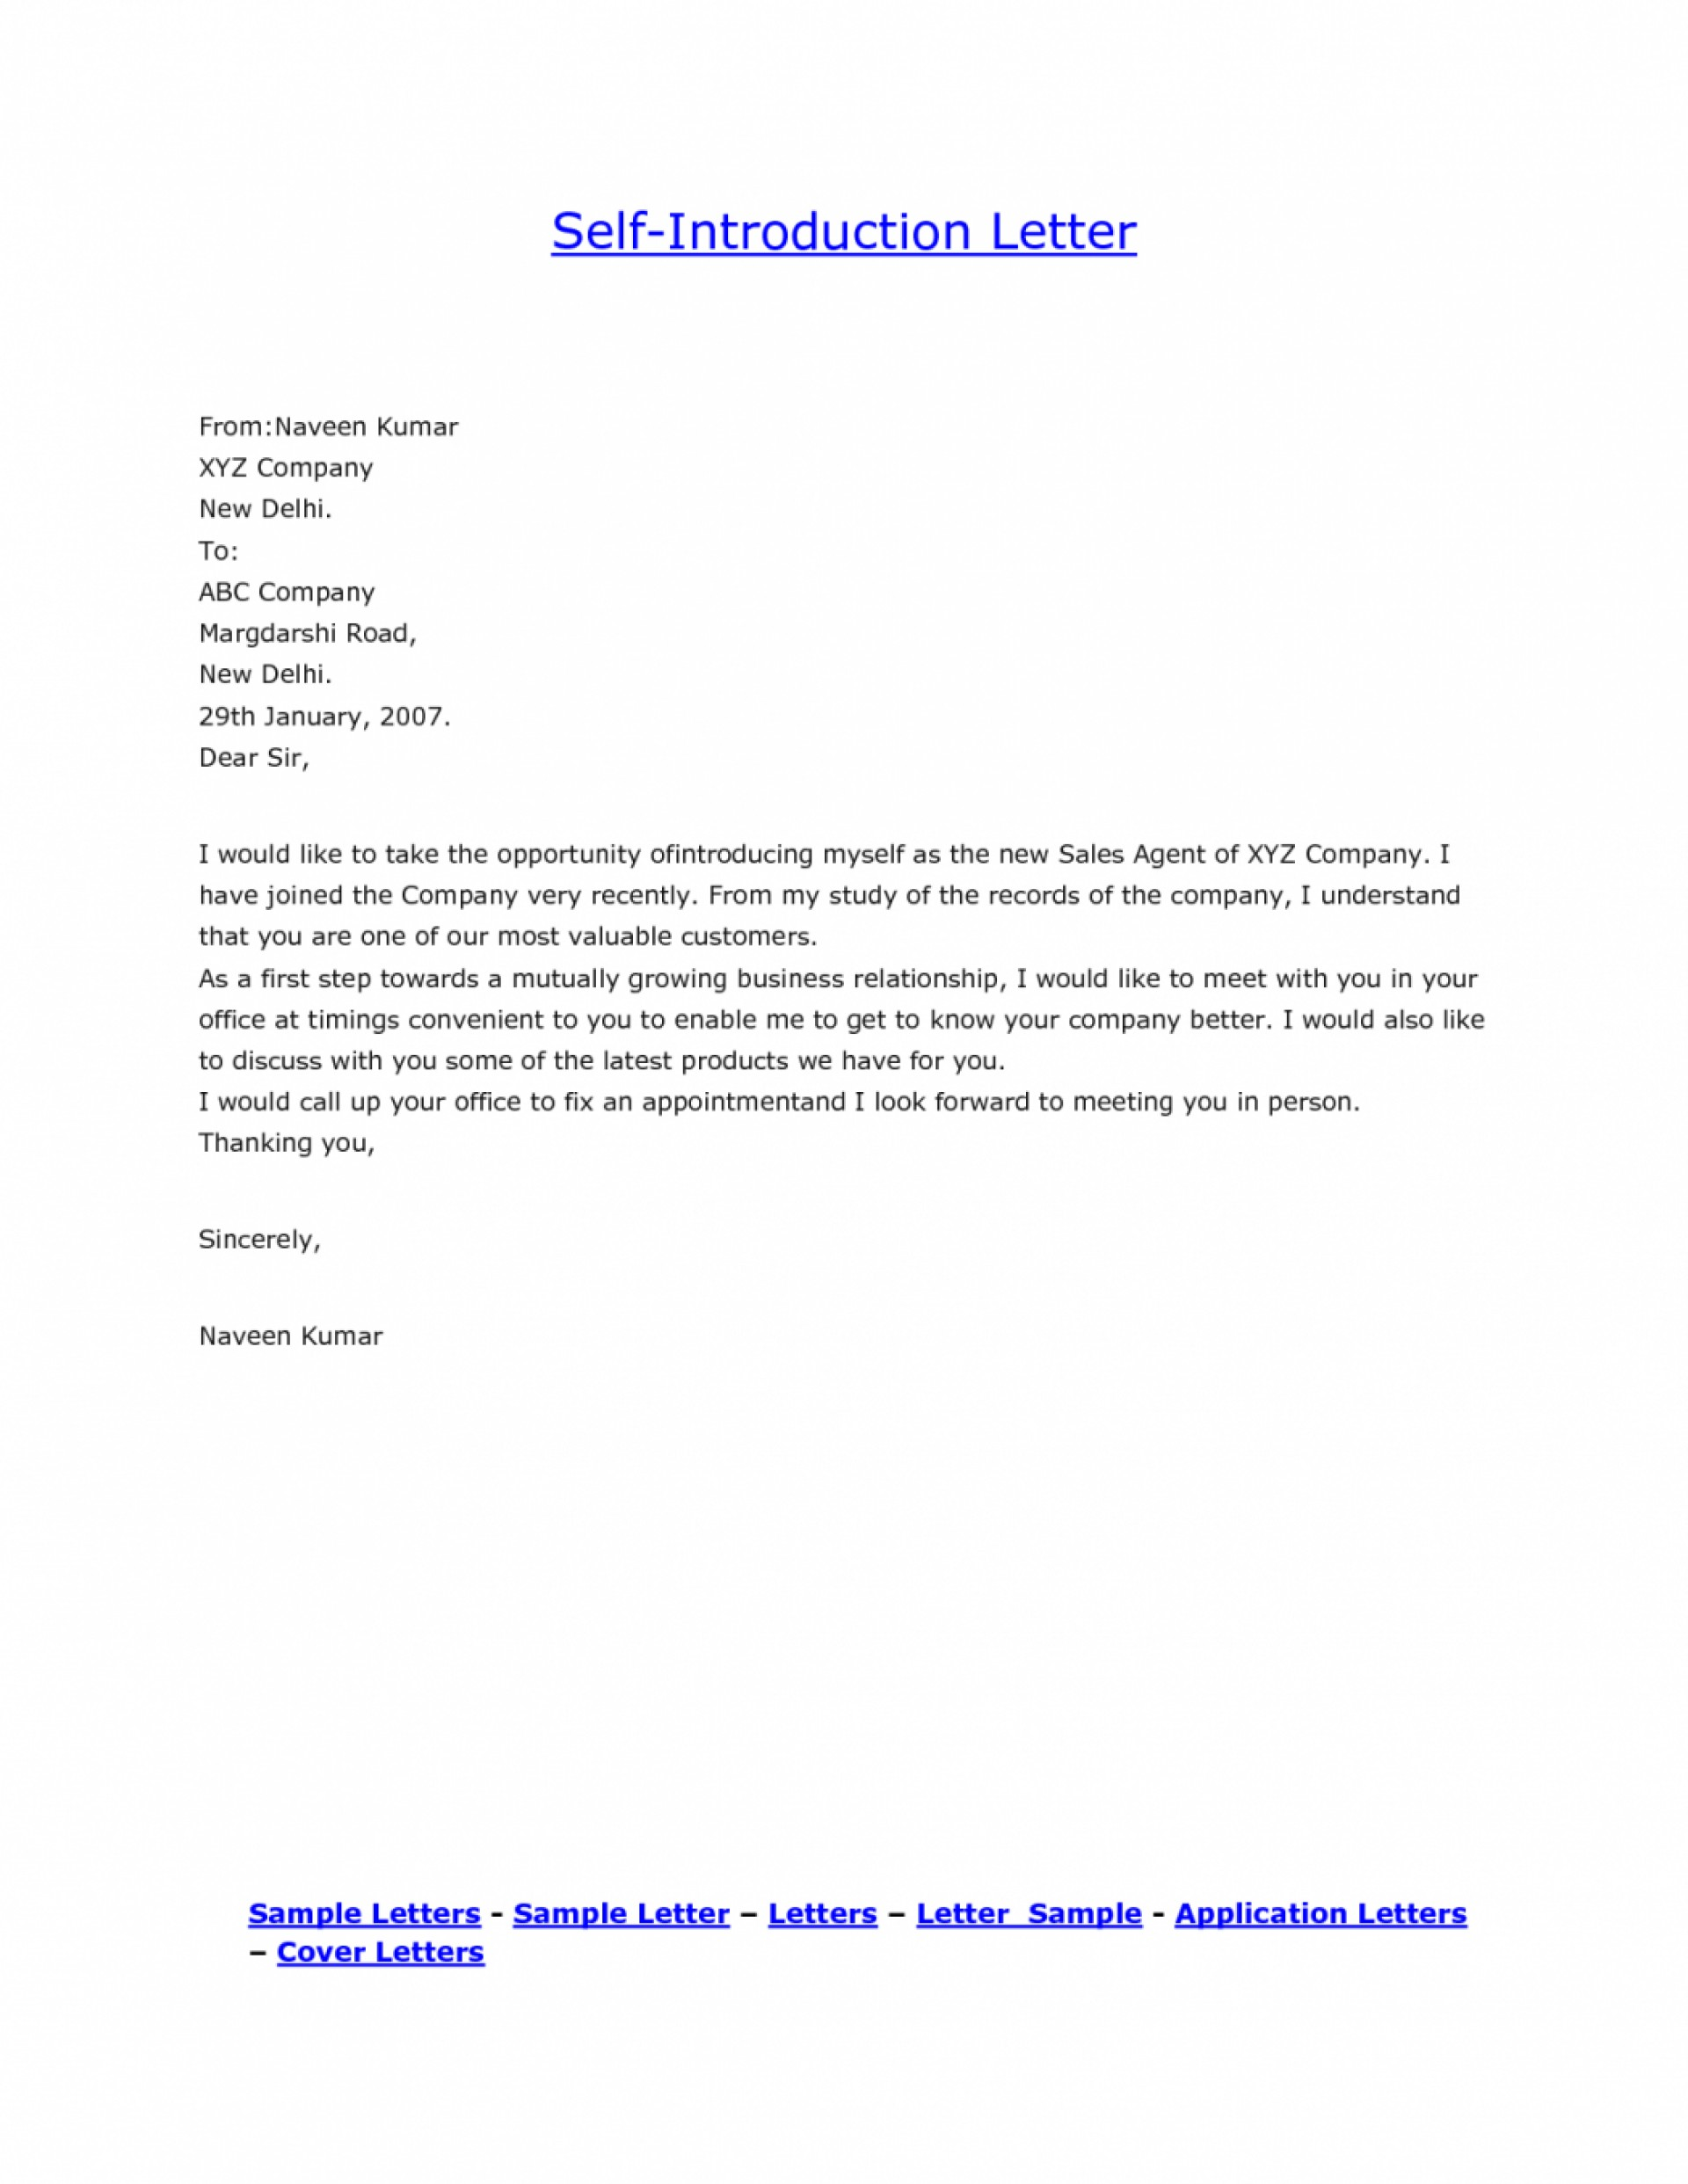 020 Introducing Myself Essay Self Introduction Introduce Personal Letter Template Sample How To Formally Yourself Via Writing 1048x1356 About Striking Apply Job With Body And Conclusion 1920